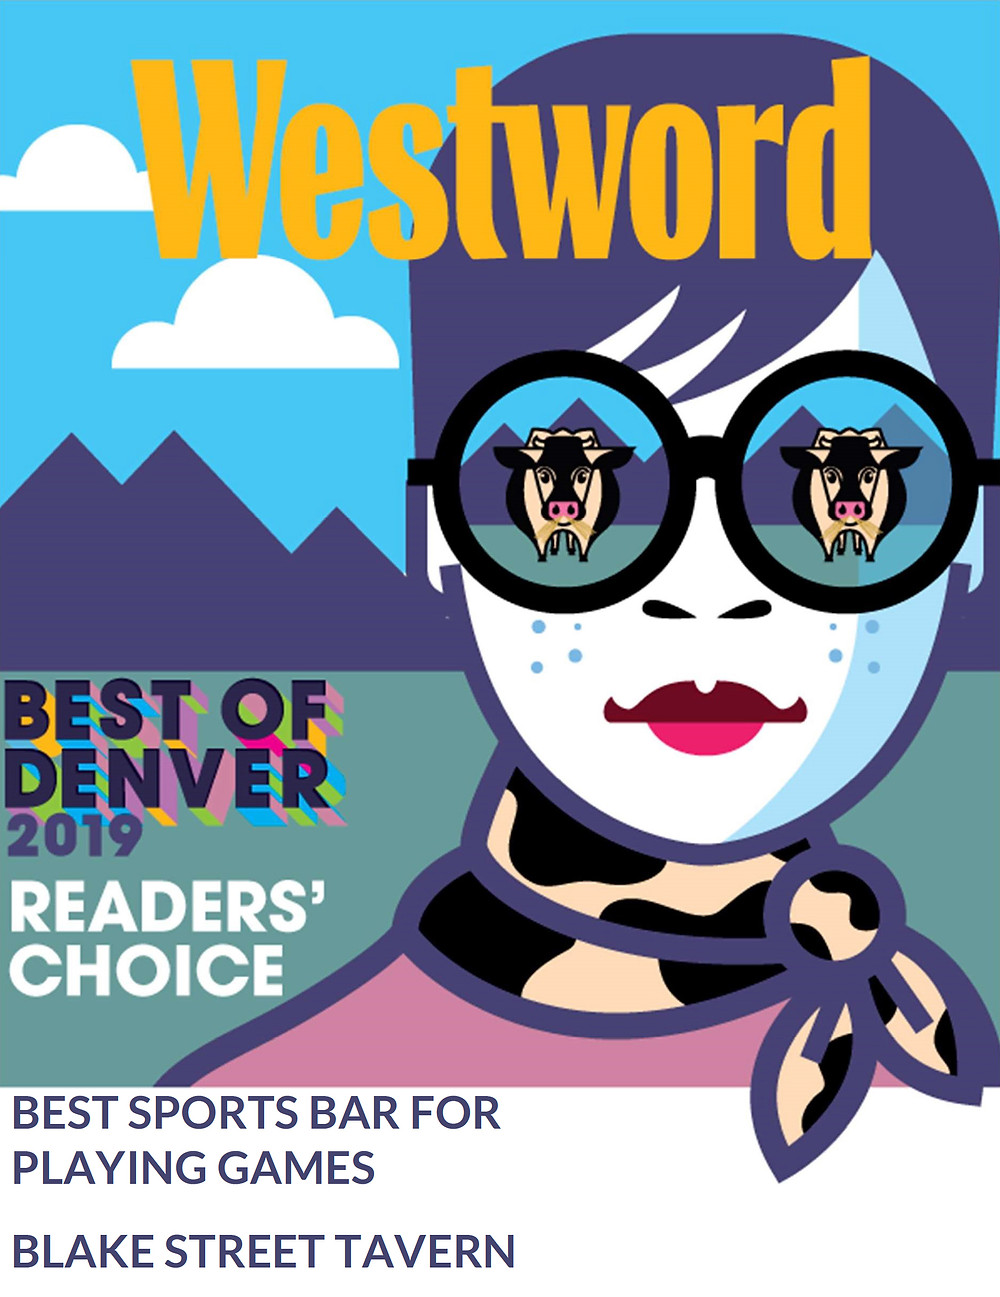 Denvers Best Sports Bar for Playing Games - 2019 Readers' Choice, Westword